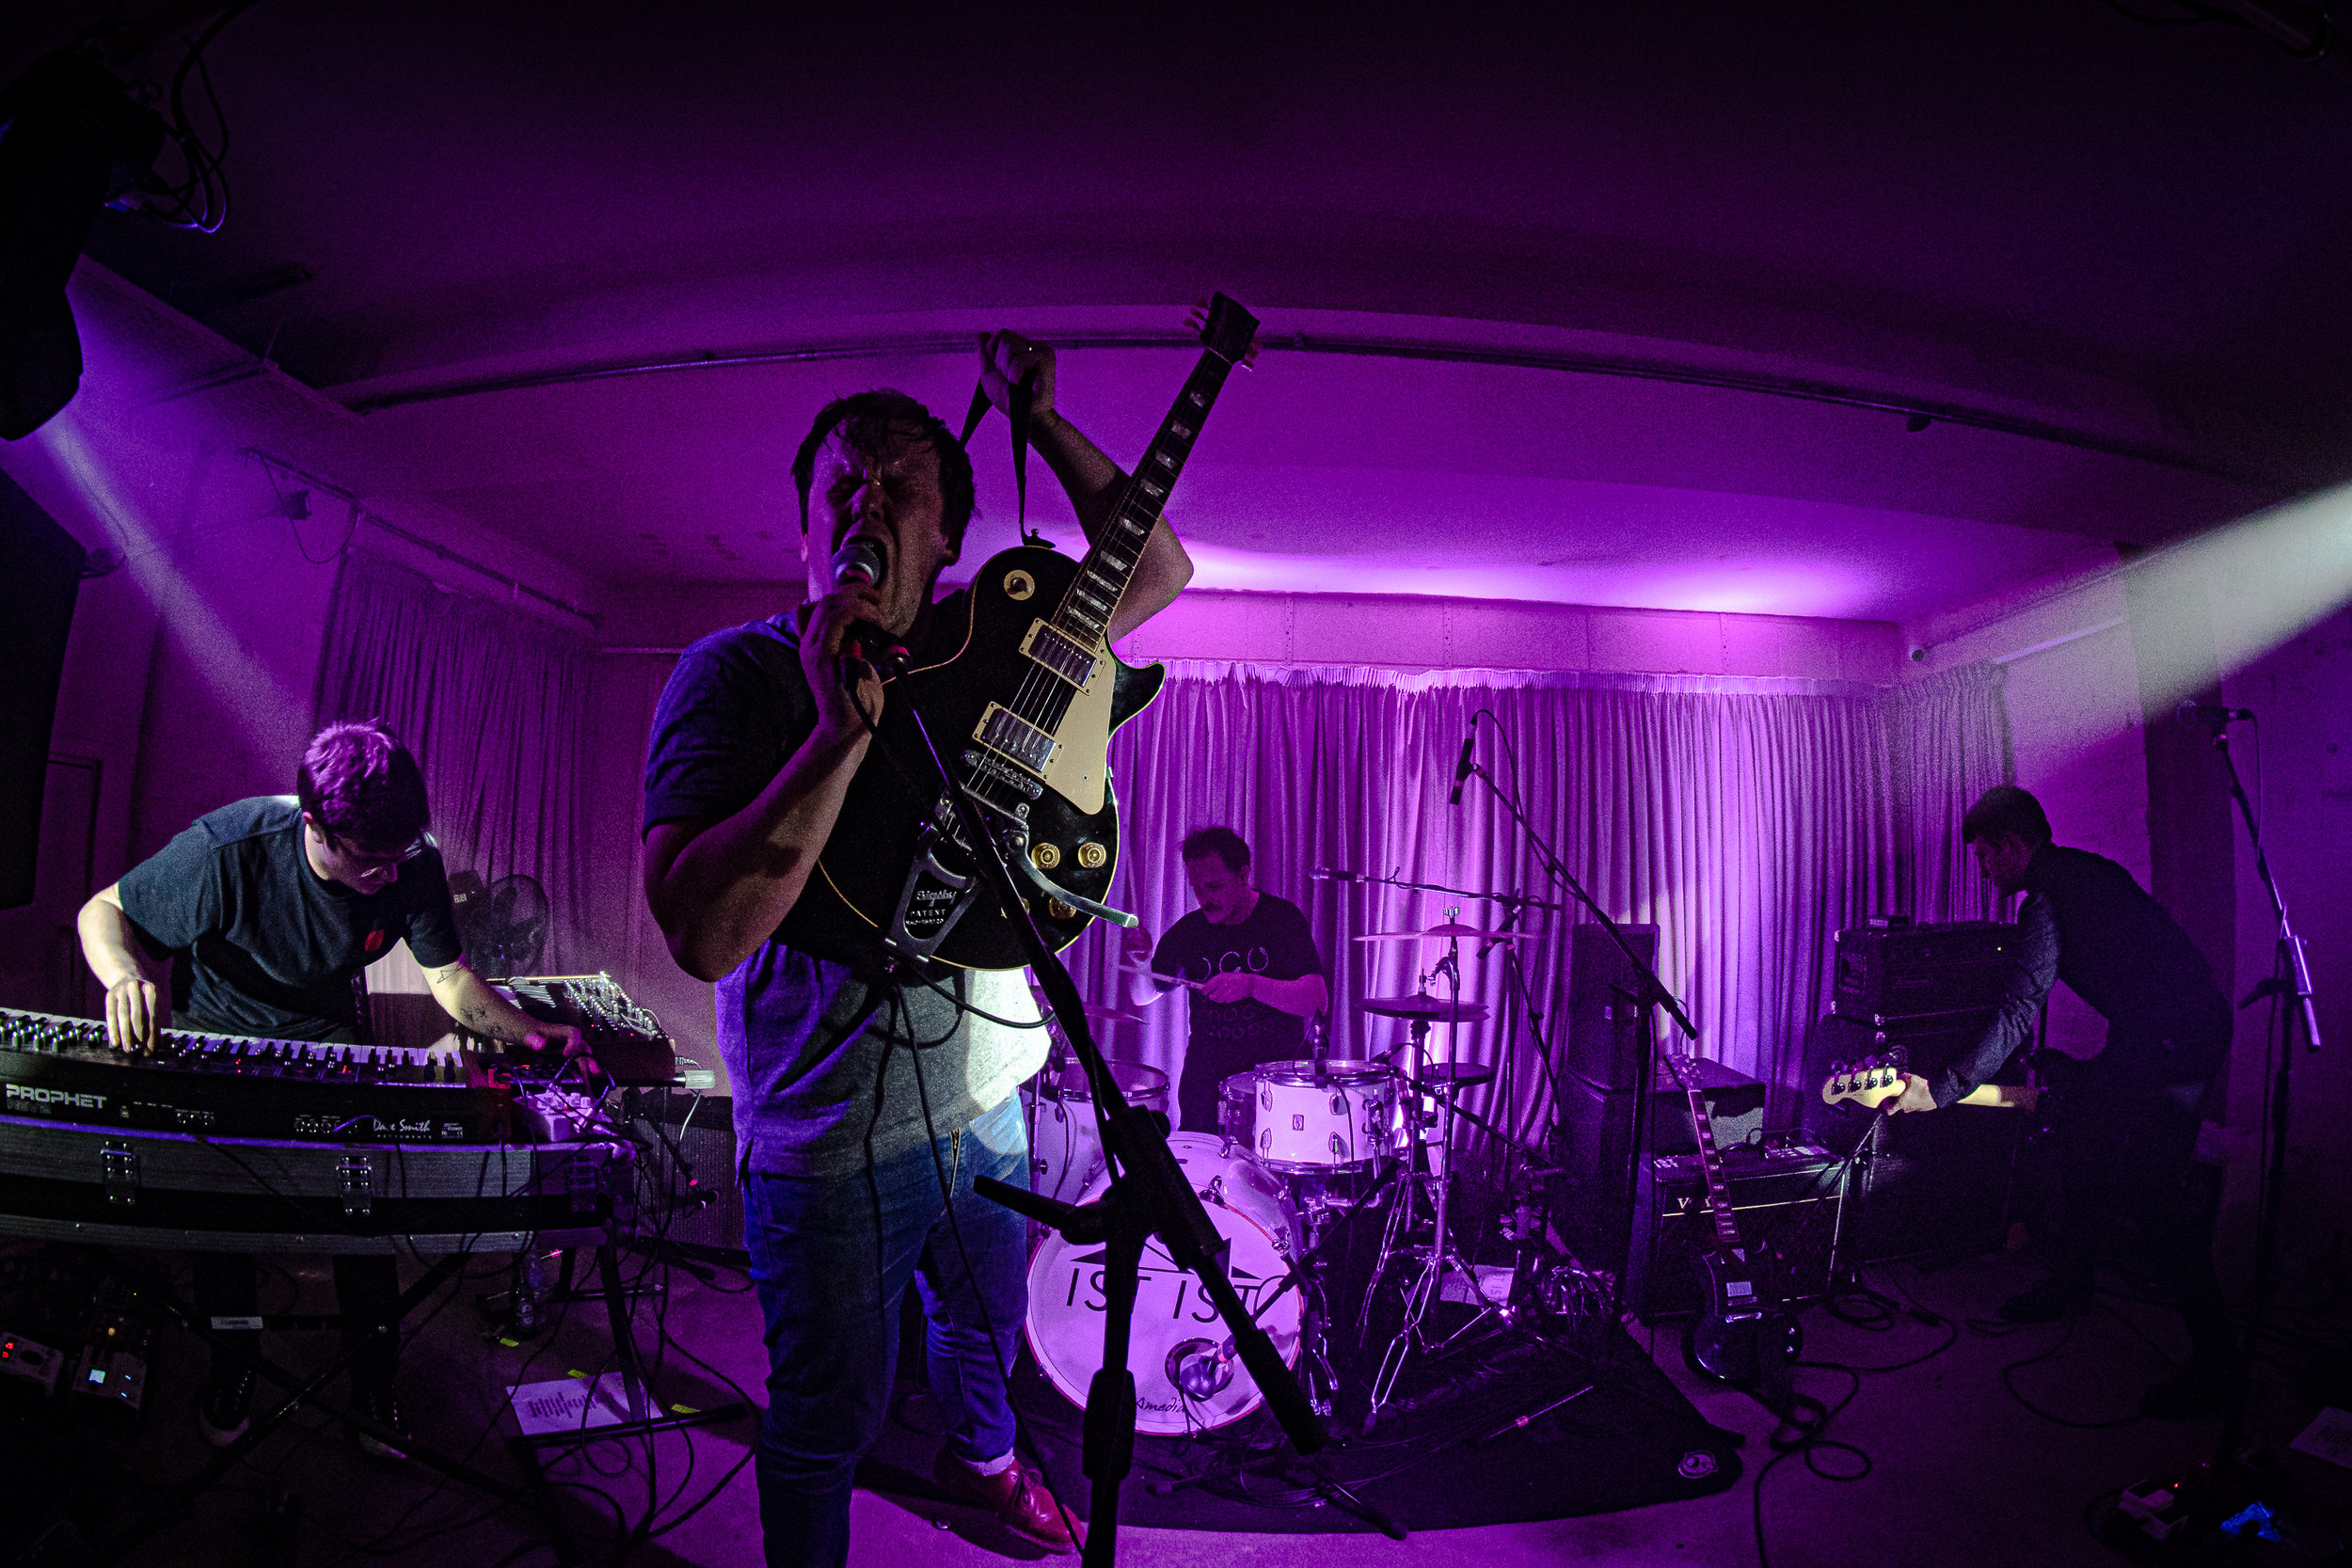 Ist Ist  - live at Yes, Pink Room 20/06/19